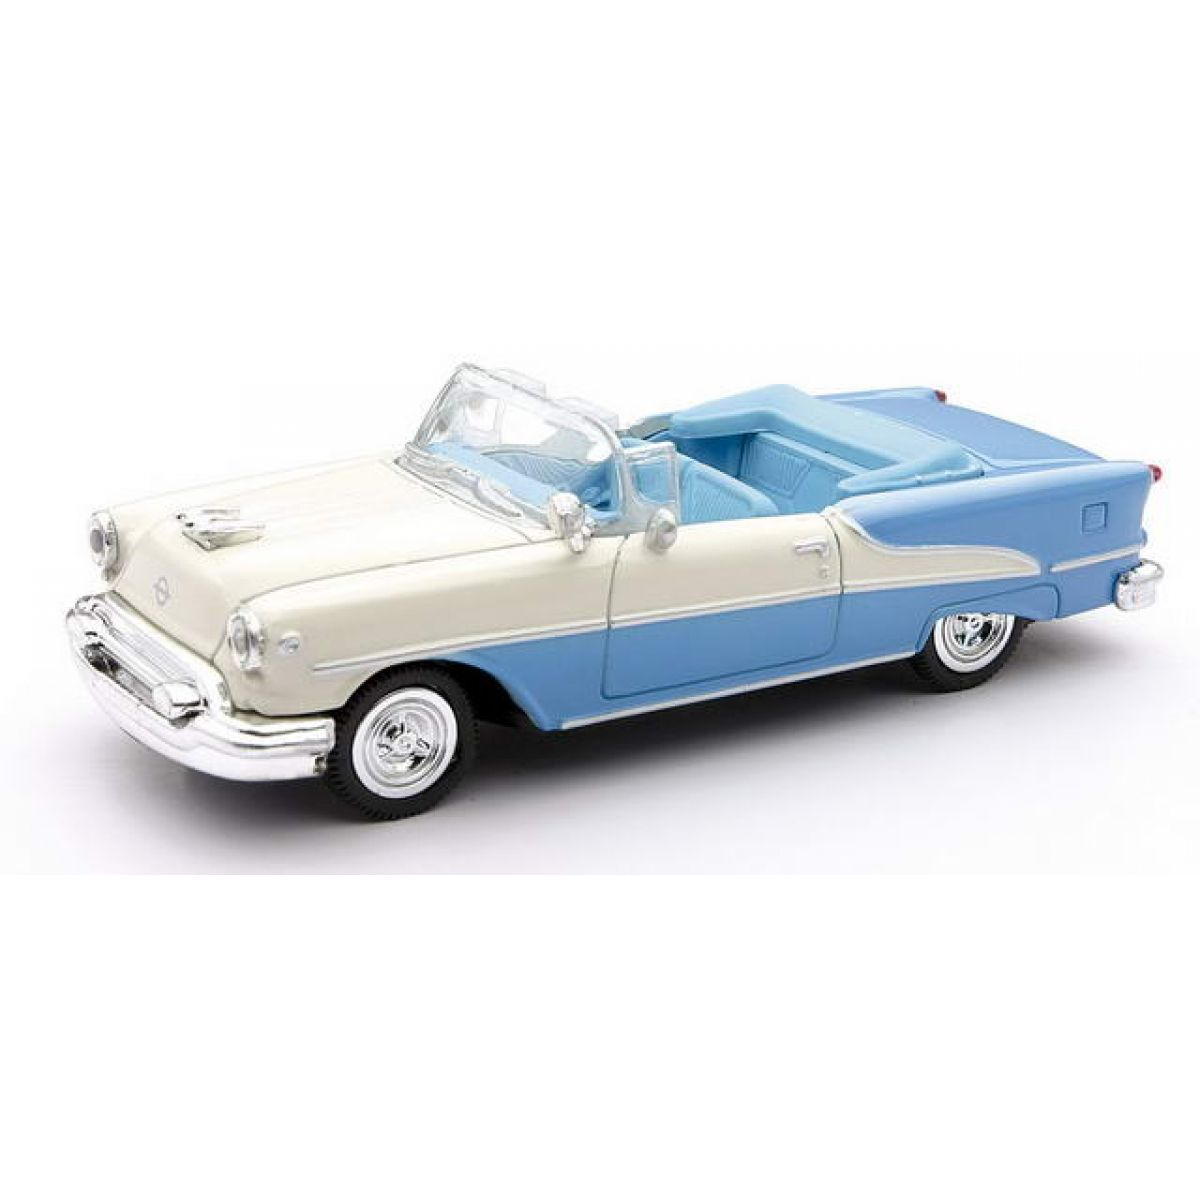 1:43 1955 Oldsmobile Super 88